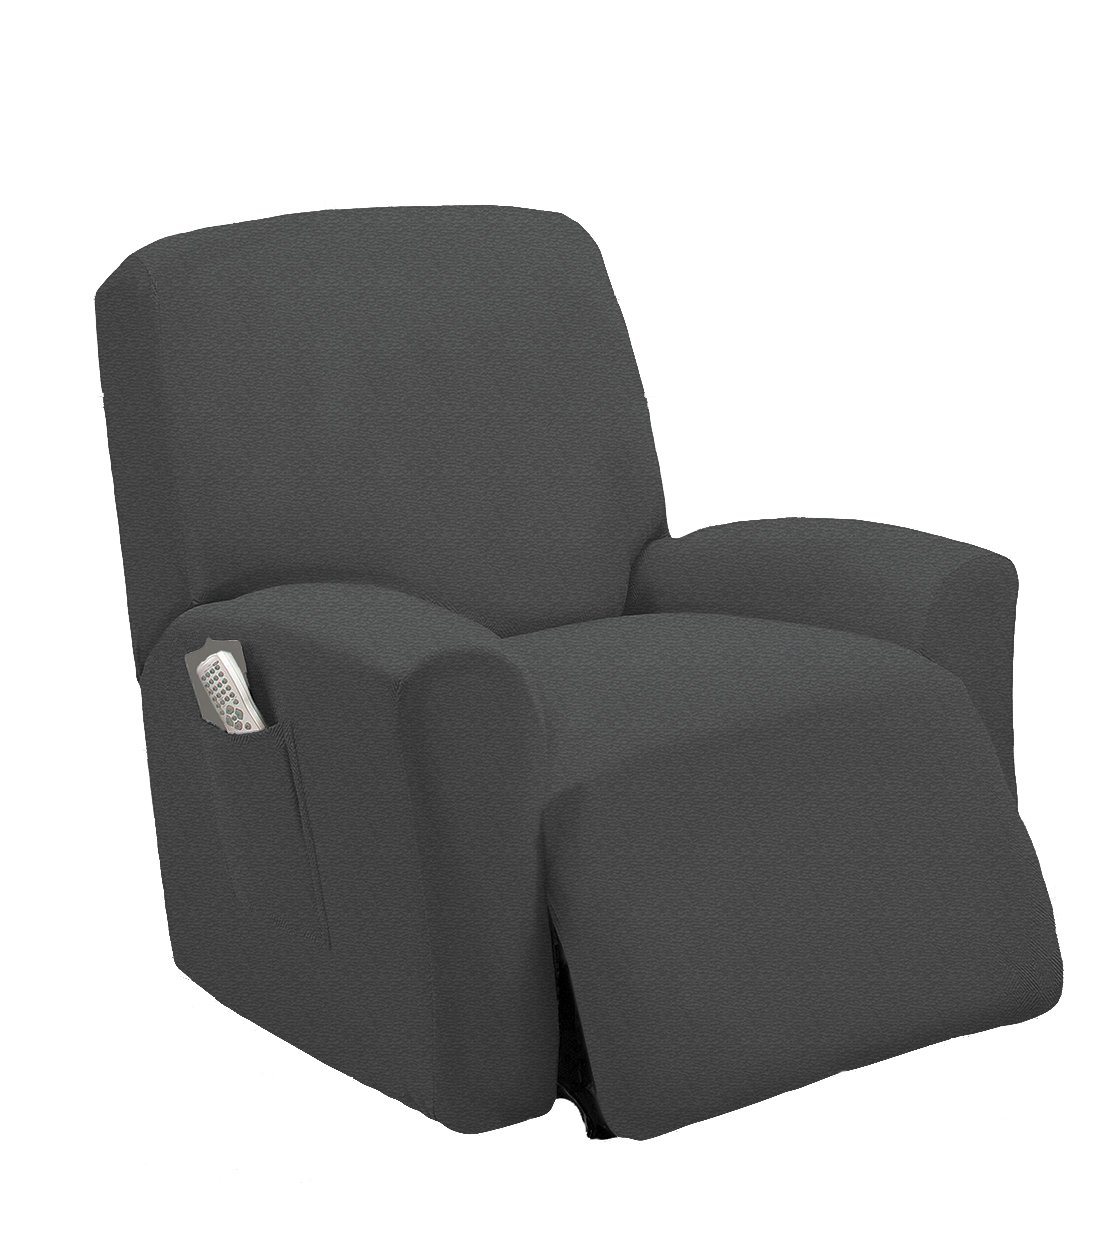 Goldenlinens One piece Stretch Recliner Chair Furniture Slipcovers with Remote Pocket Fit most Recliner Chairs (Gray)